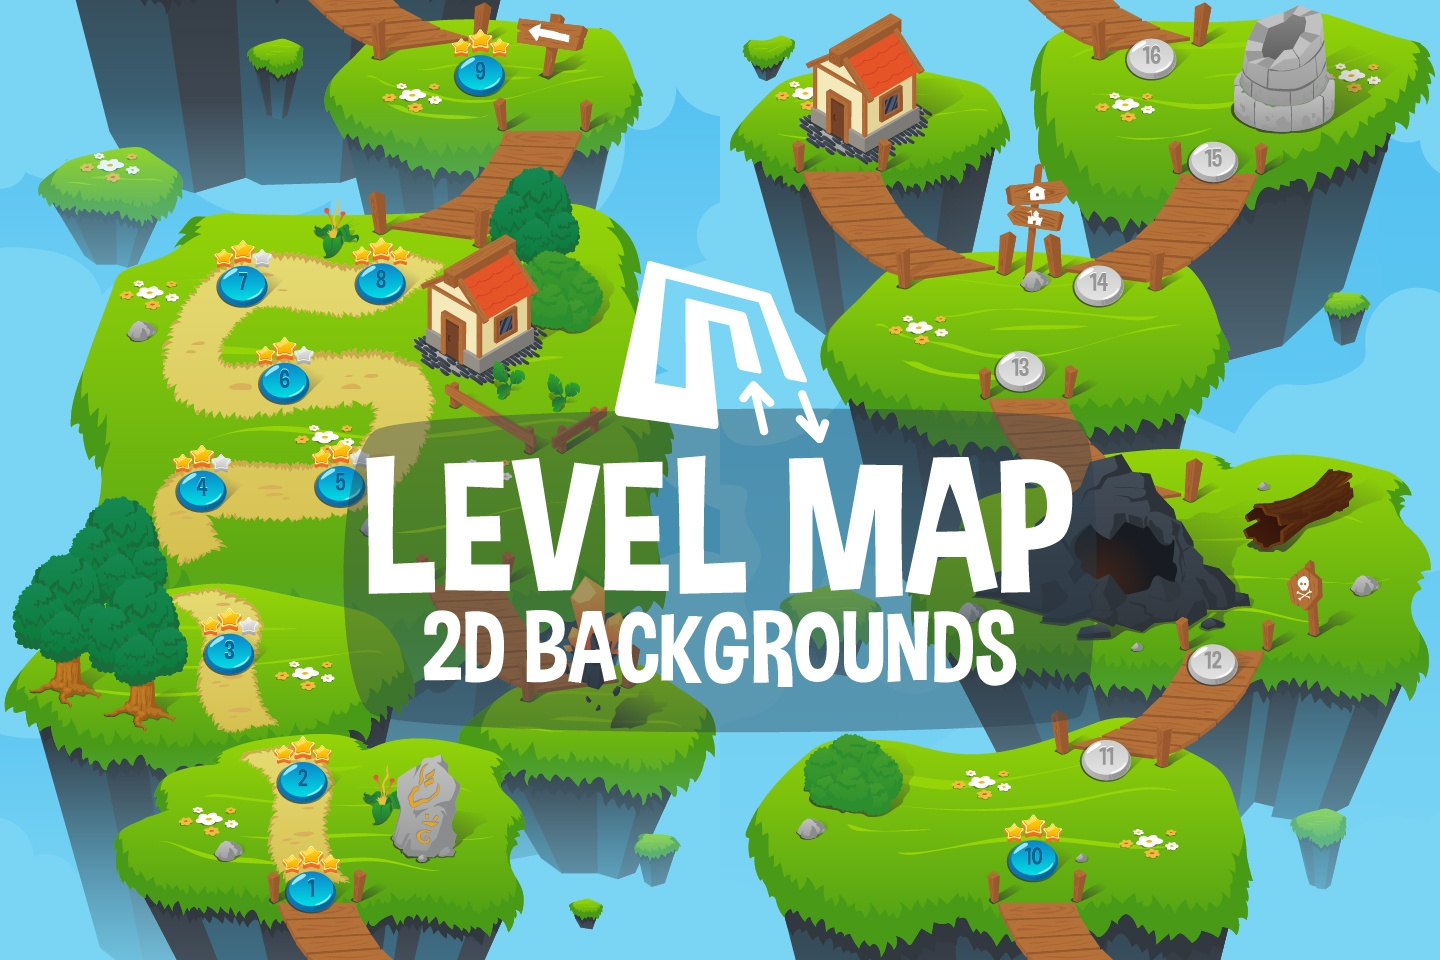 Level Map 2D Game Backgrounds   CraftPix net Level Map 2D Game Backgrounds